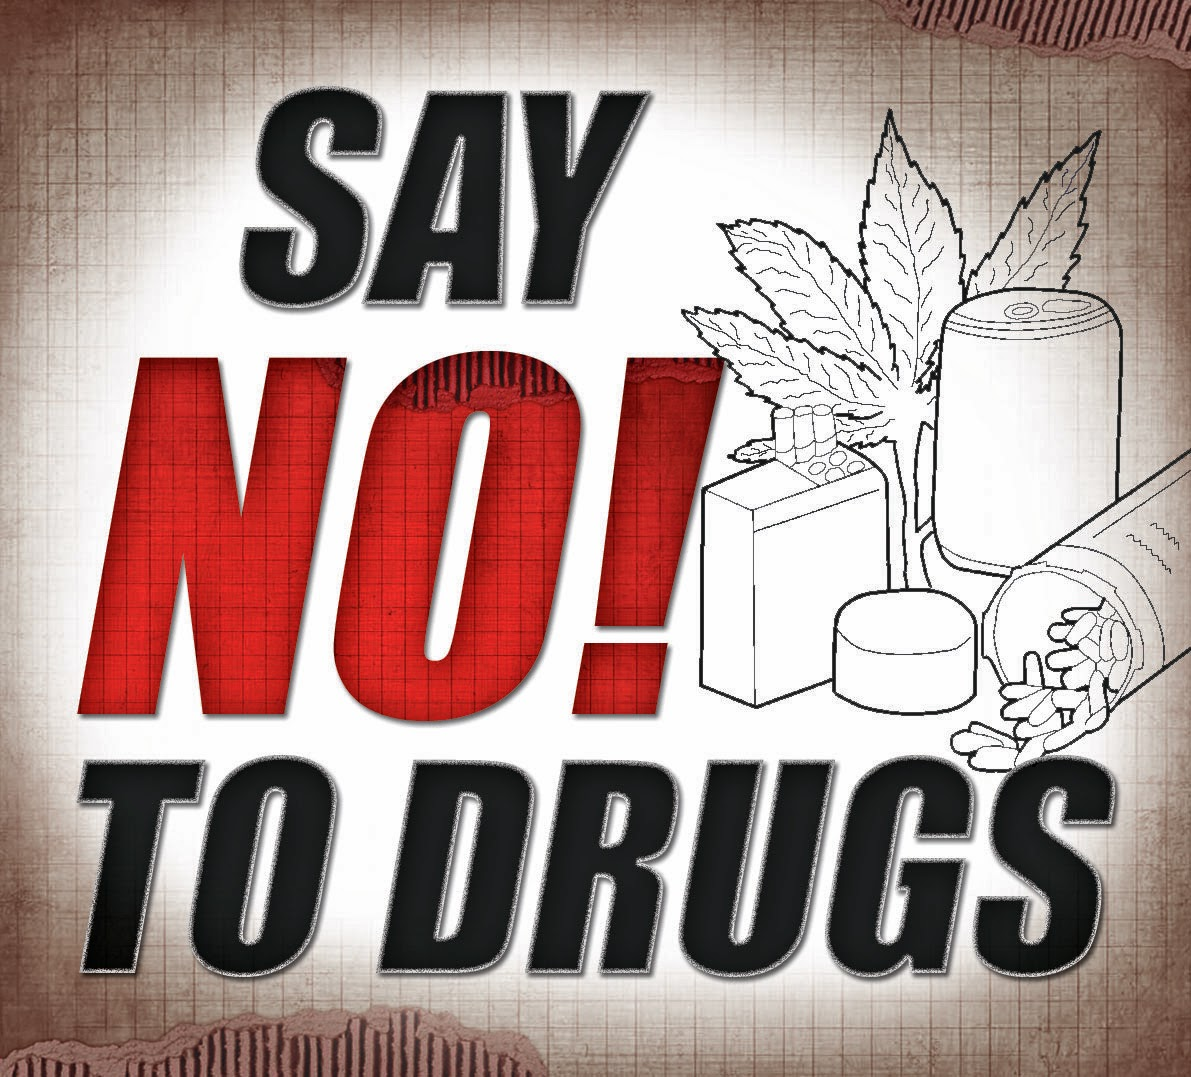 say no to drugs essay texas tech resume help most important invention ever essay dissertation data analysis methods say no to drugs slogans halloween say no to drugs slogans